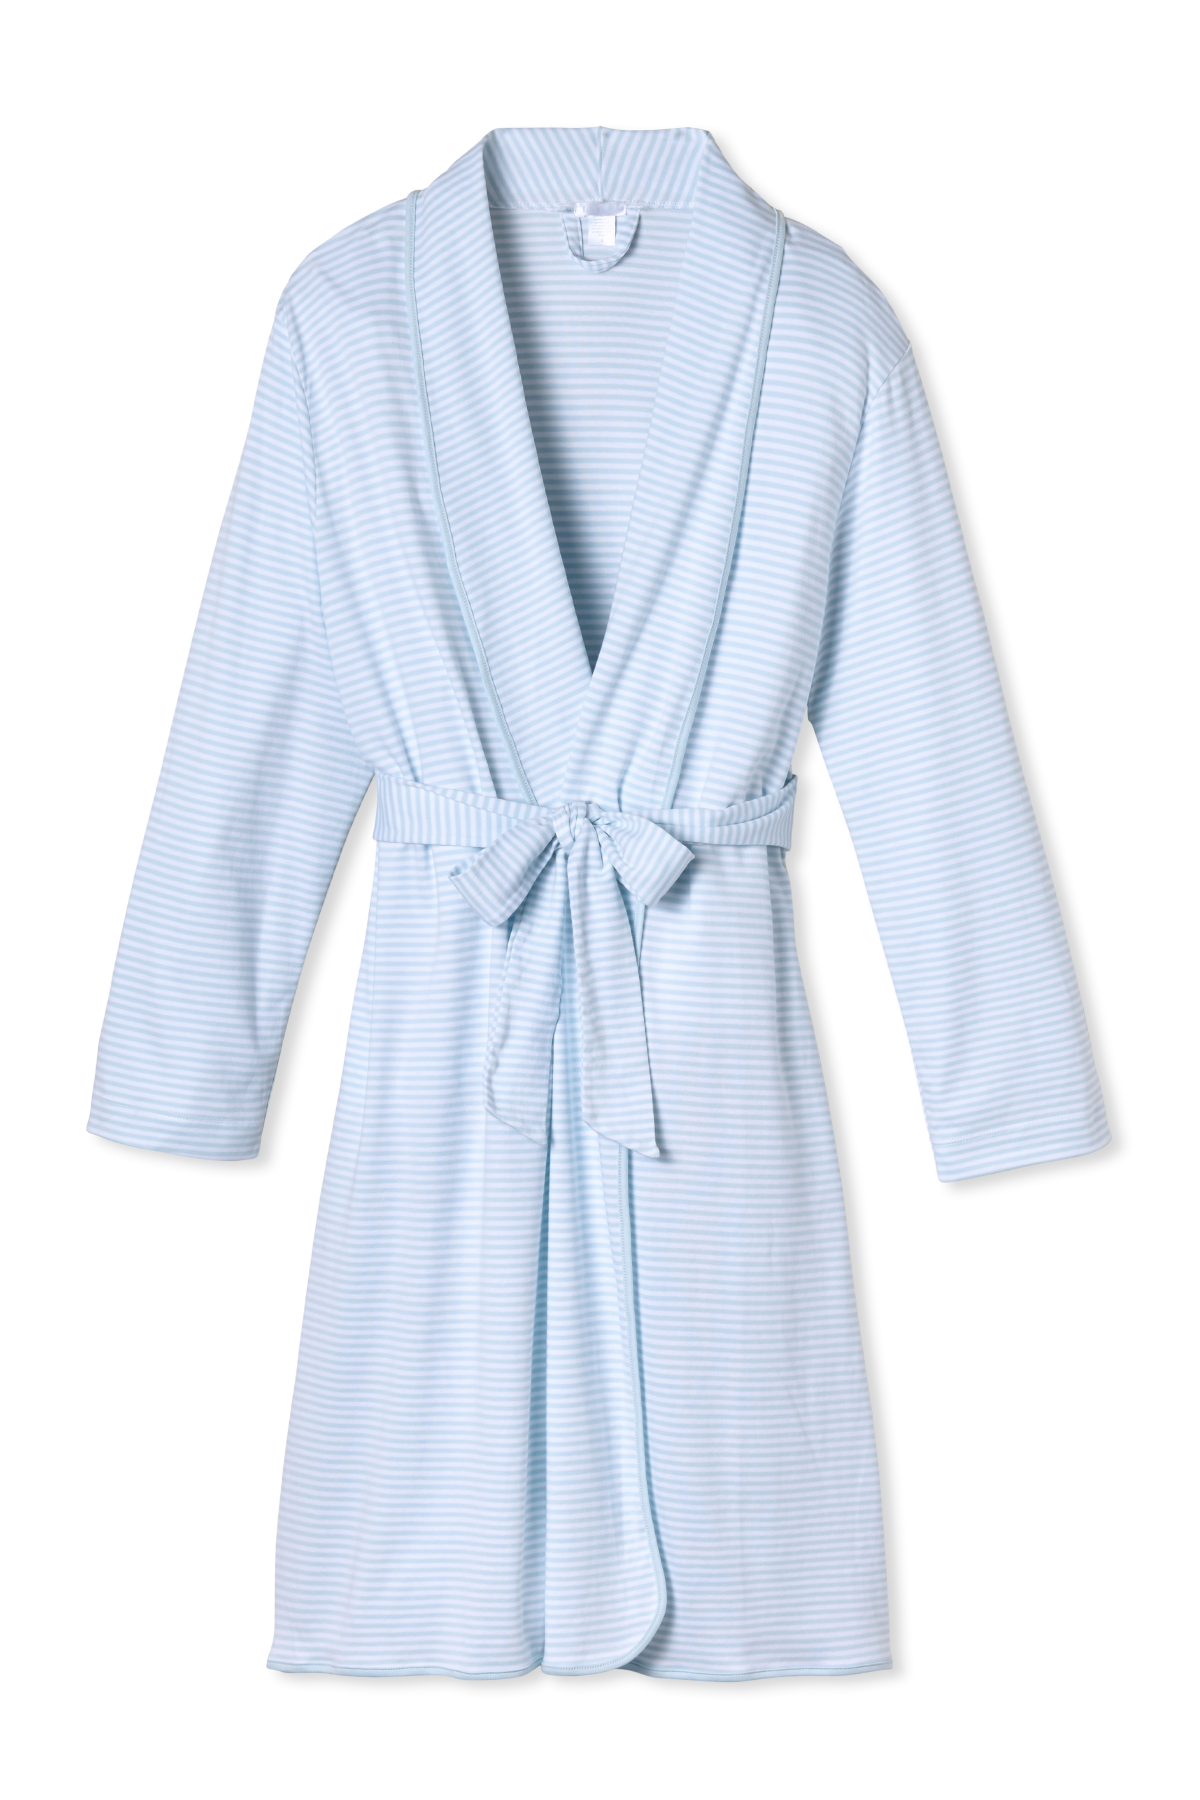 Pima Robe in Porcelain